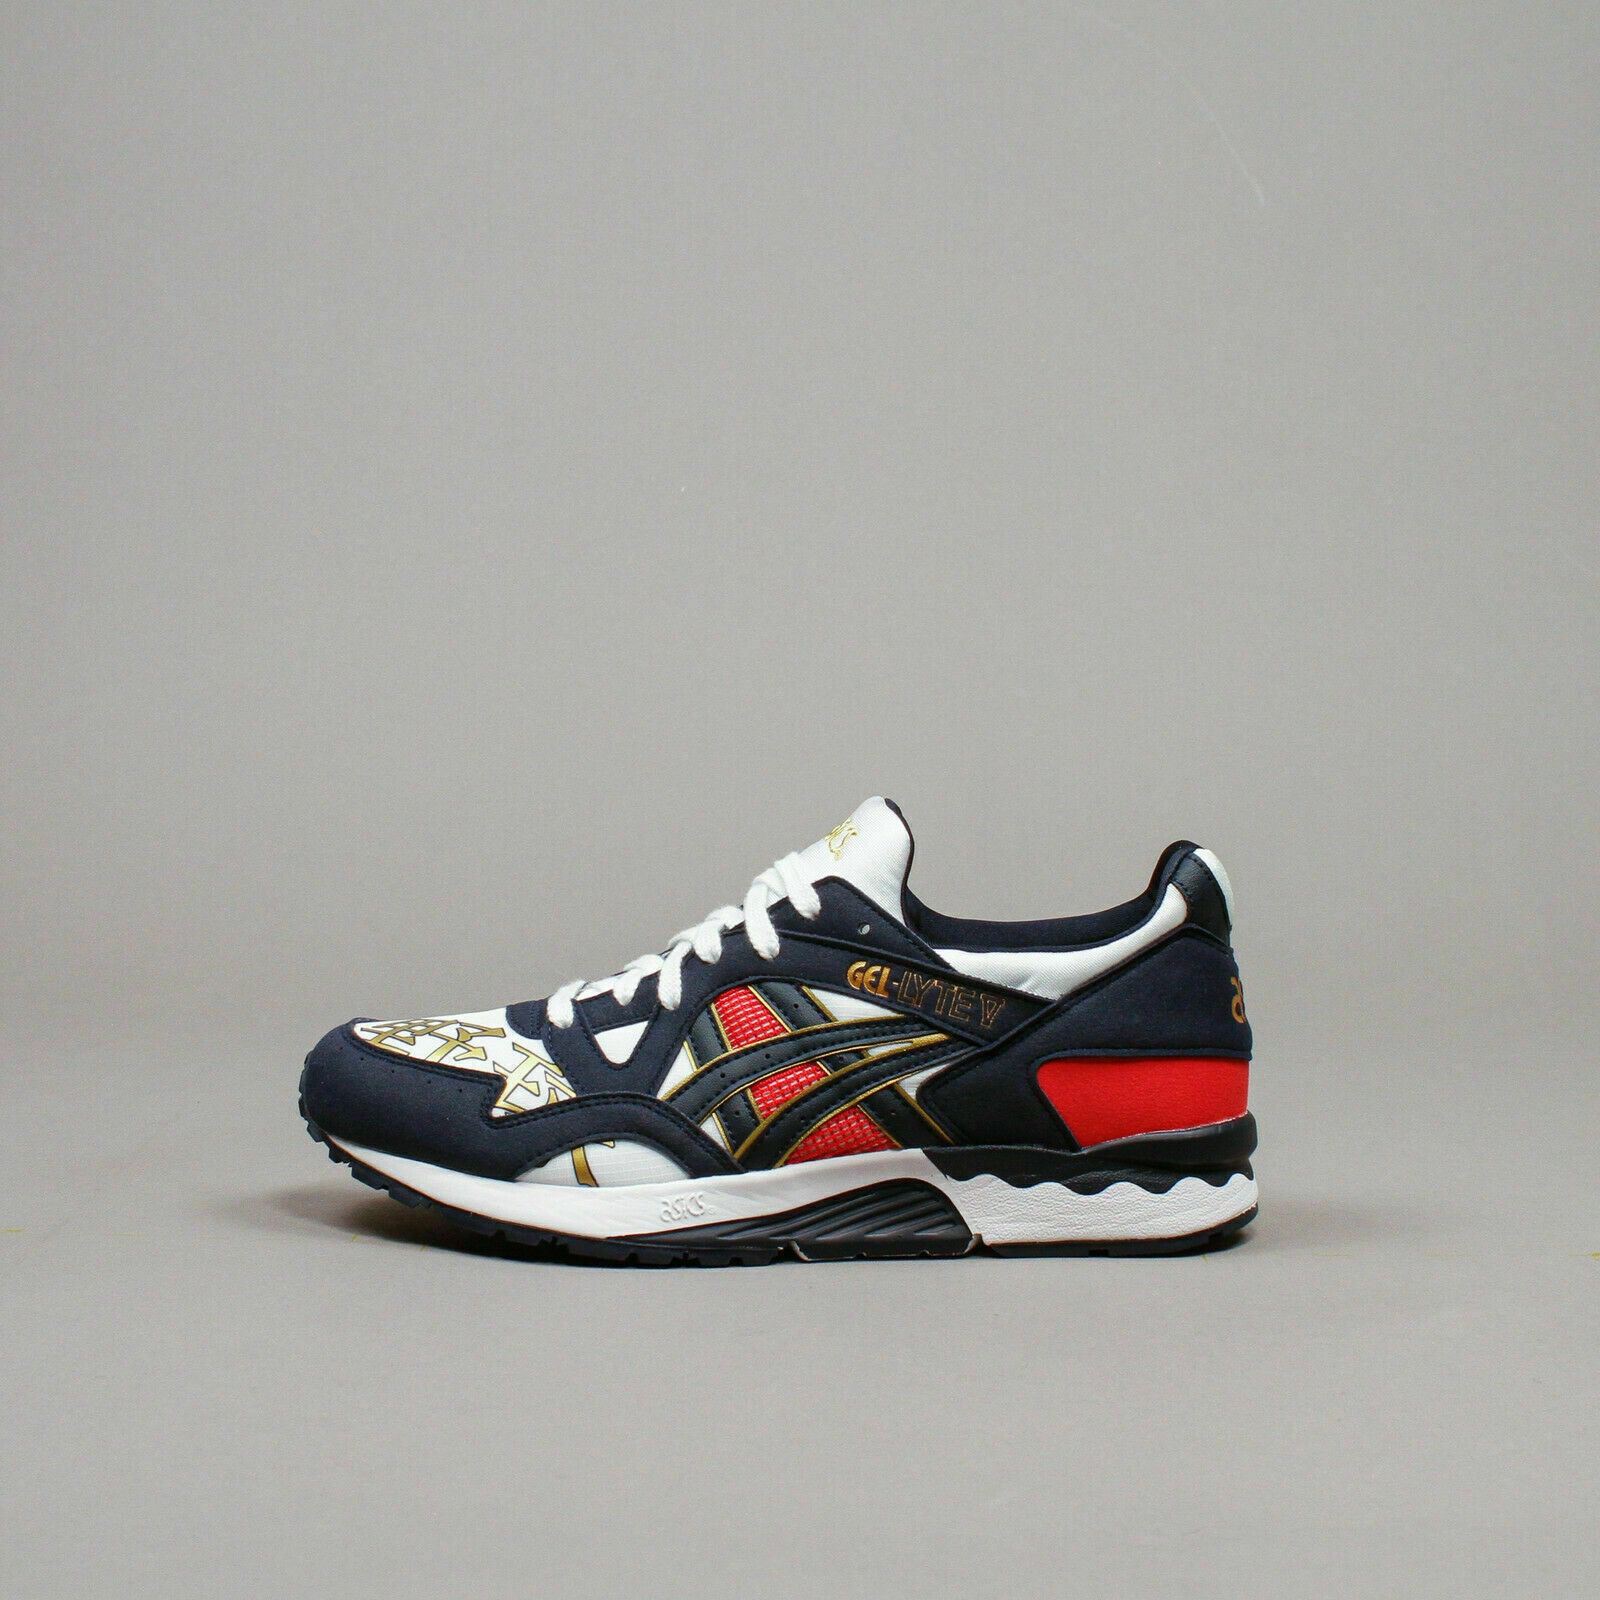 carga tijeras Confirmación  ASICS Tiger Gel-lyte V - Men's off White/fiery Red 13 for sale online | eBay